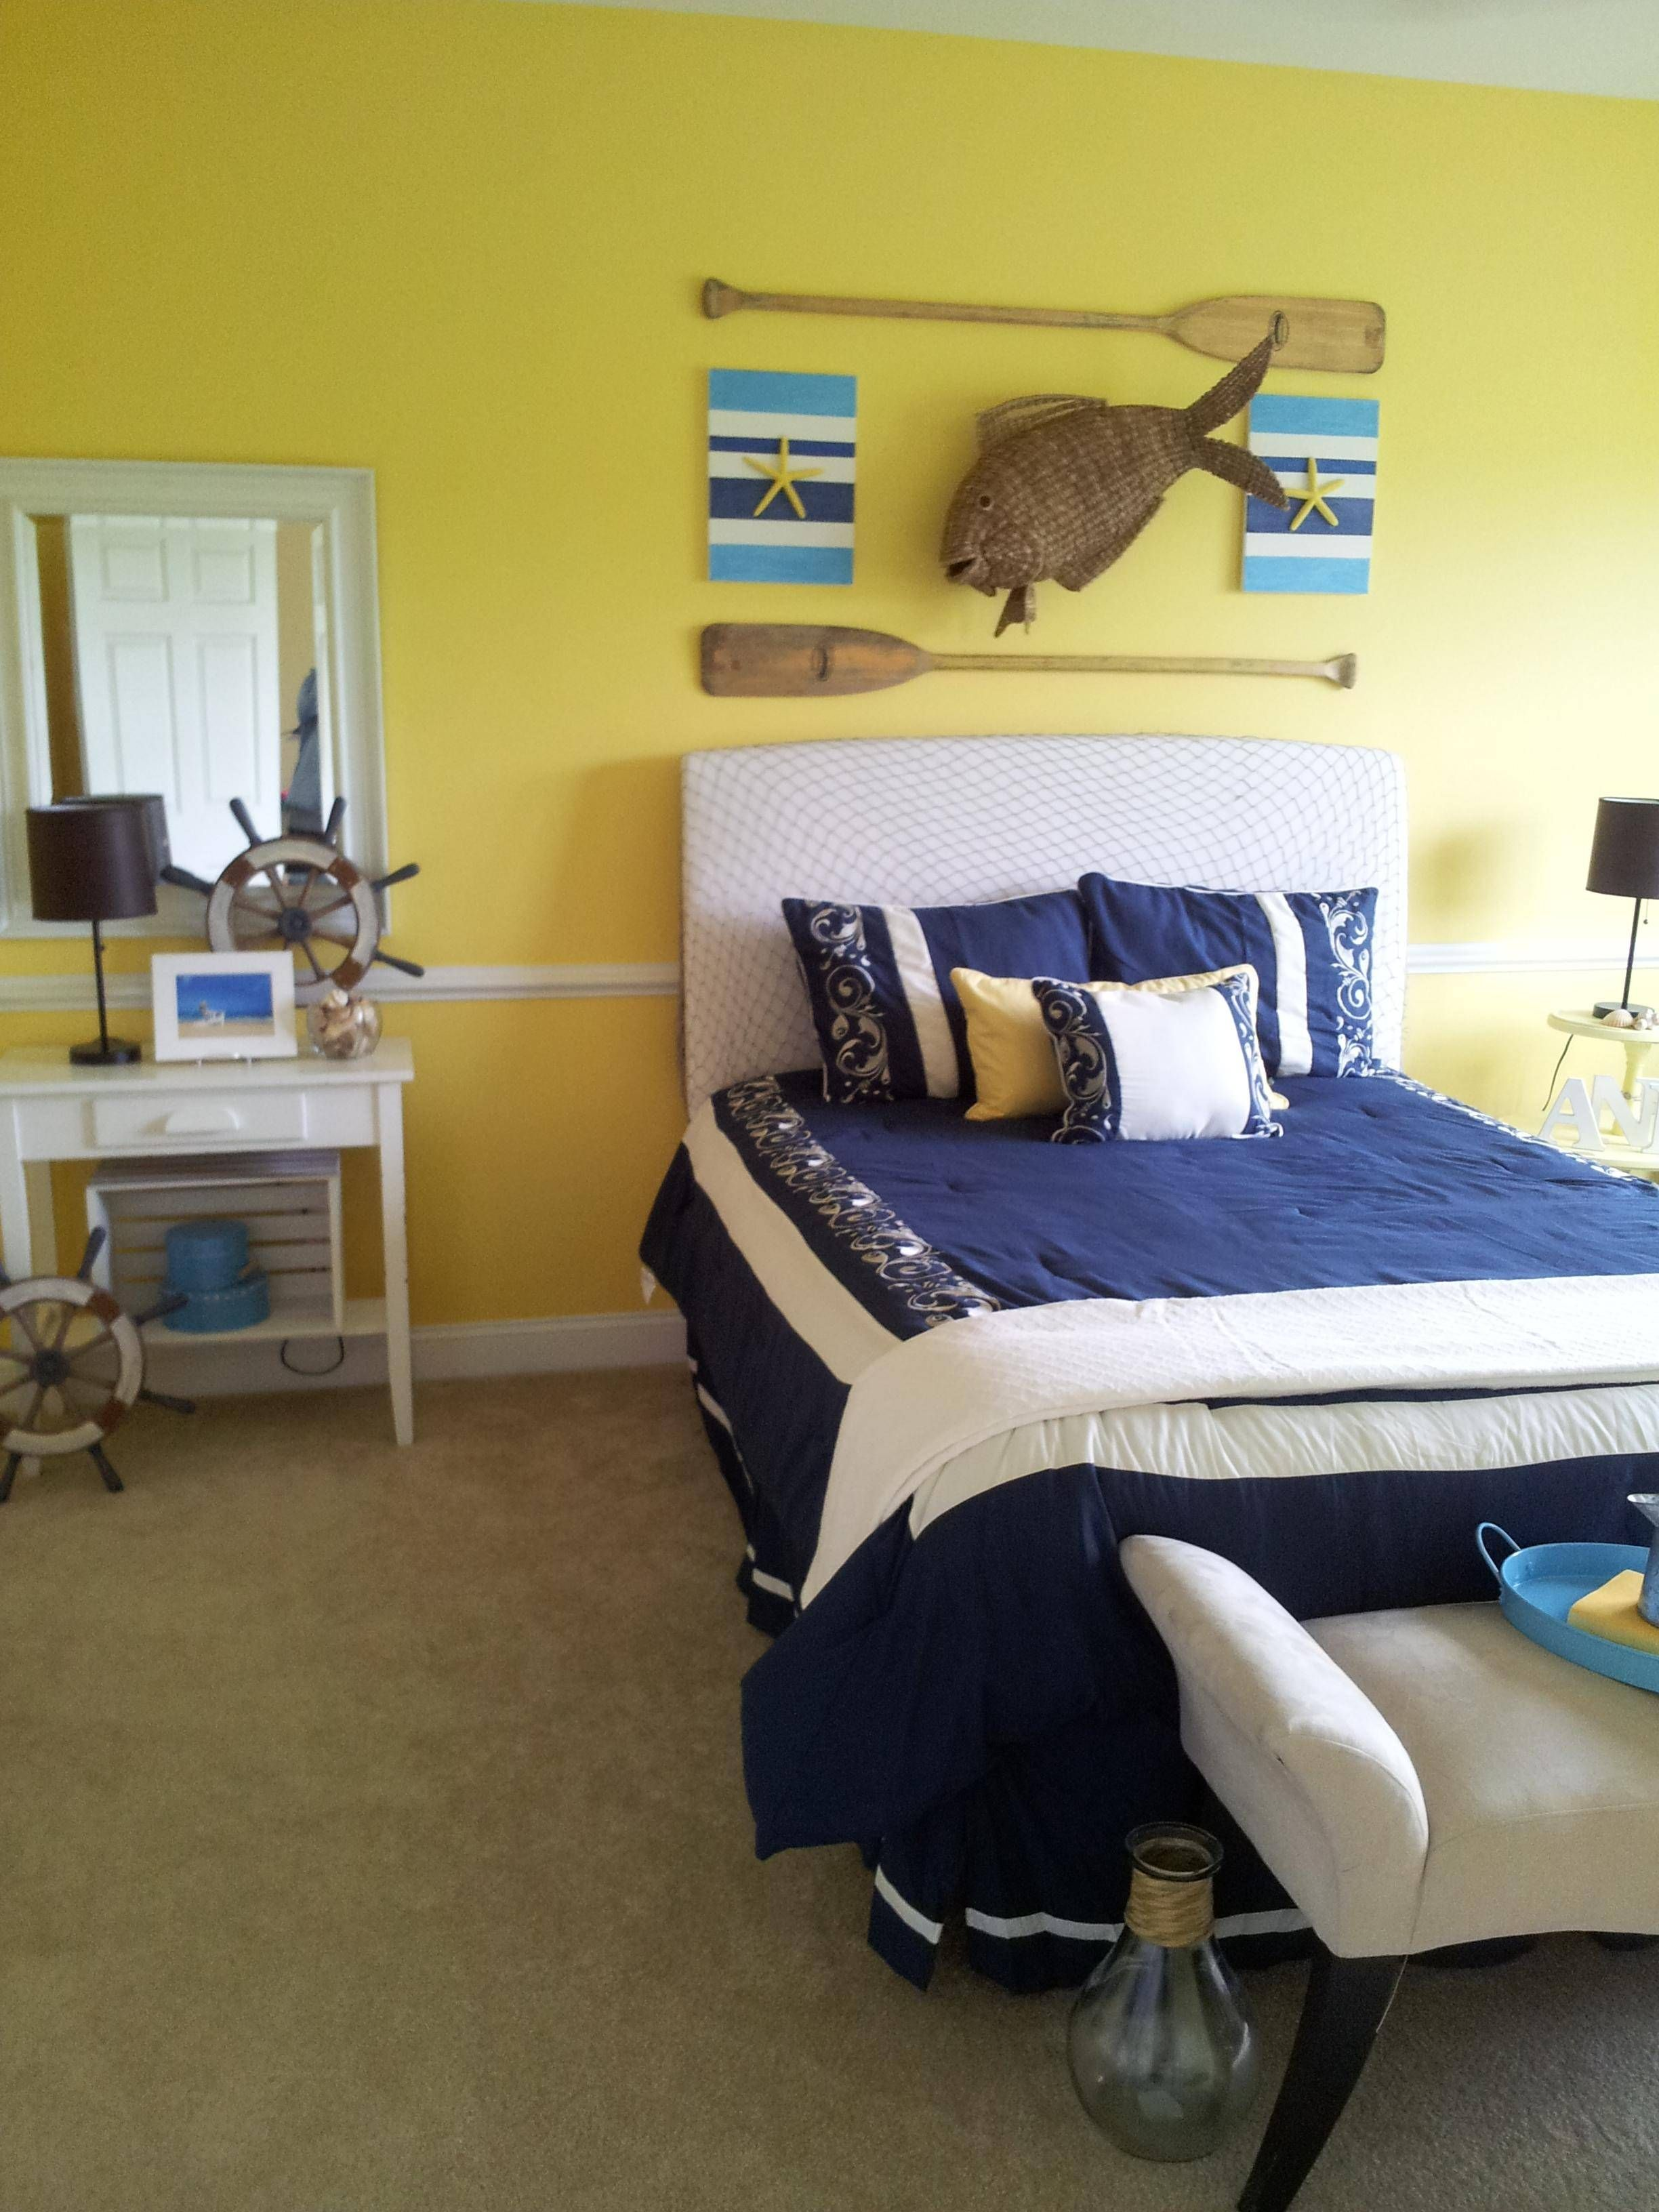 redecorating bedroom%0A Redecorated daughter u    s room in a beach theme design  Used fish net for  headboard  painted